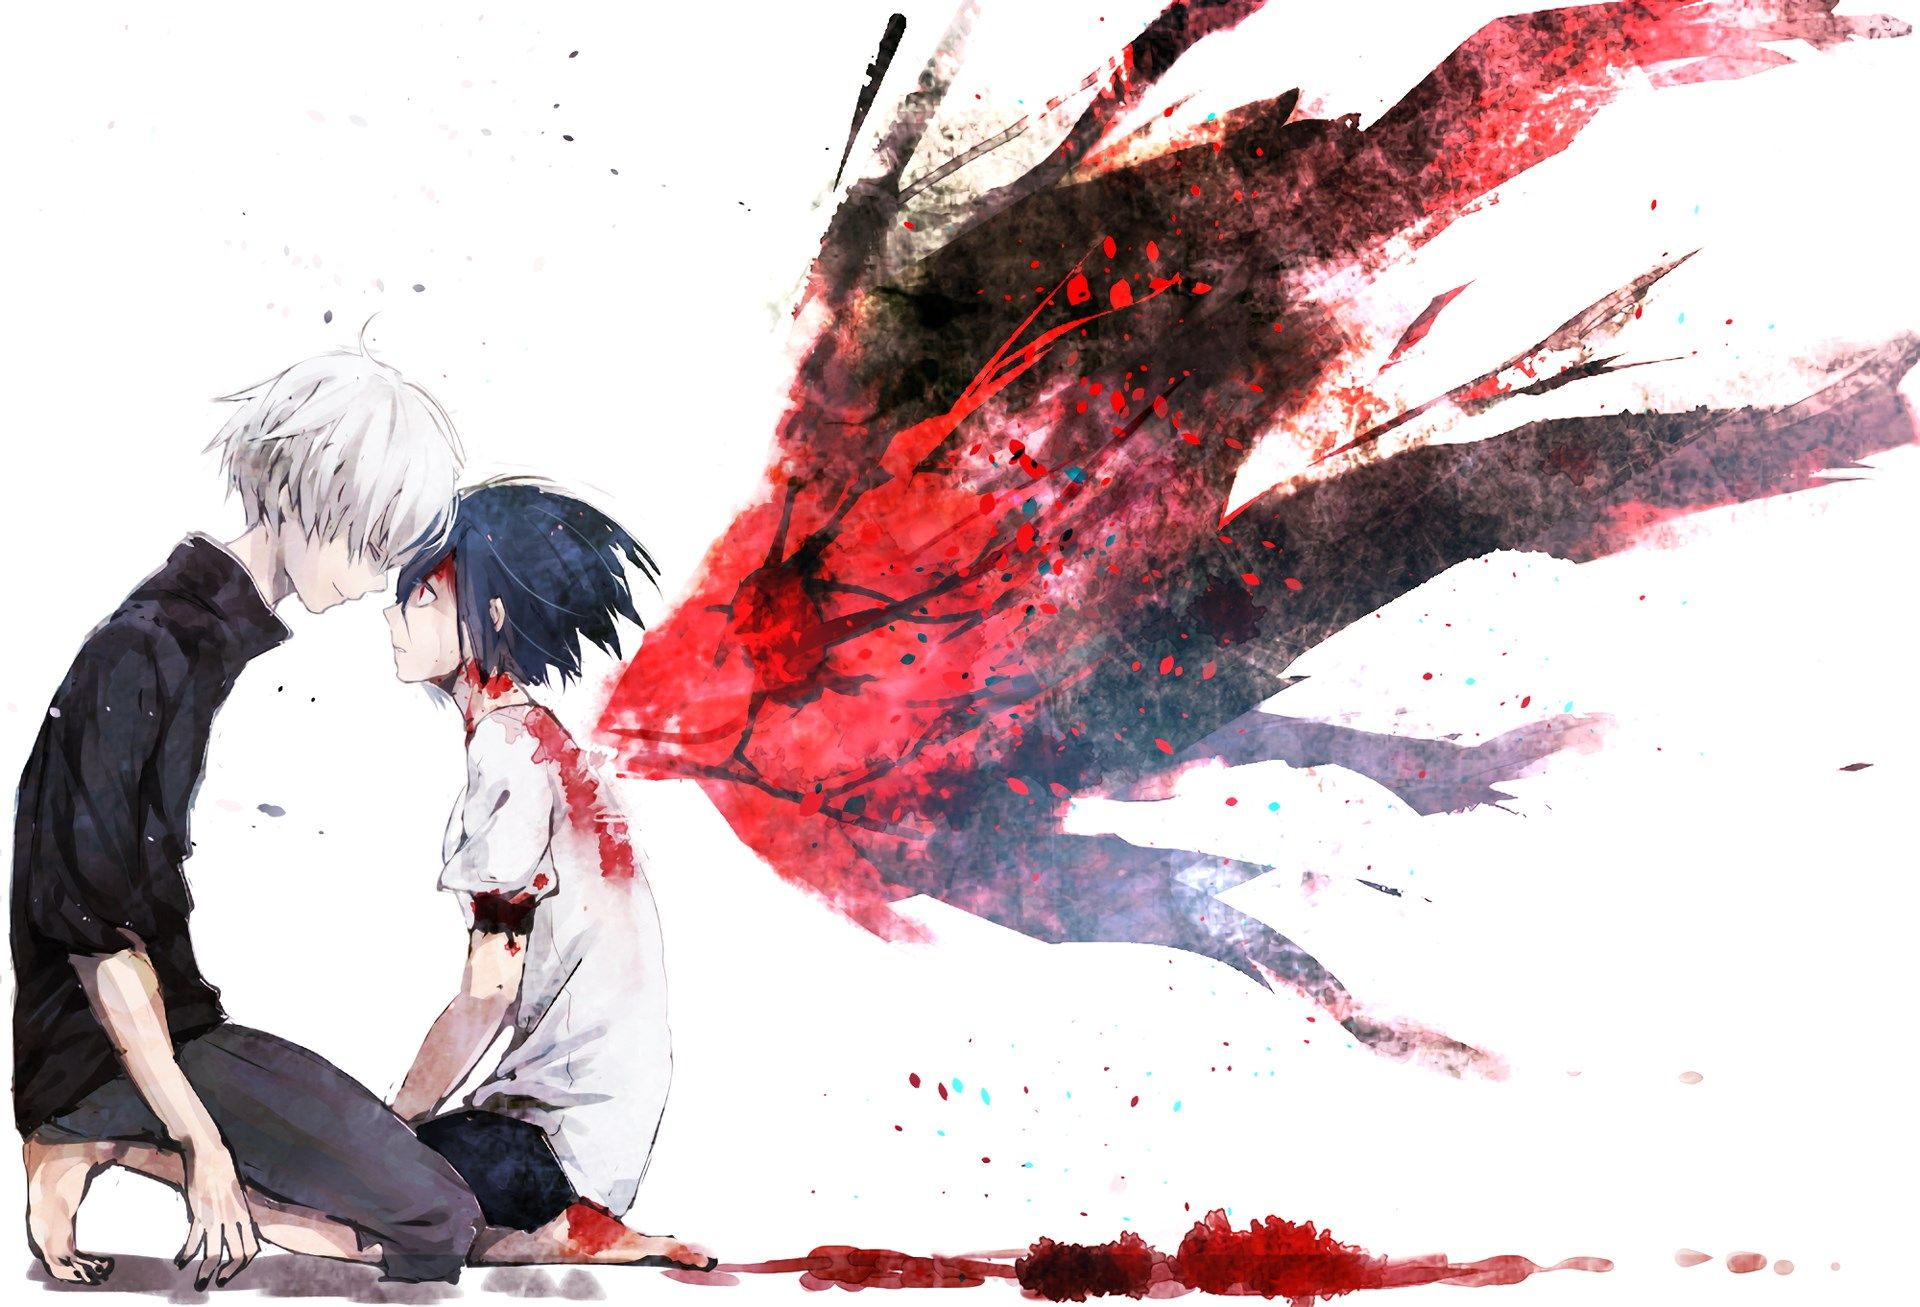 Cool Wallpaper Mac Tokyo Ghoul - dcf180f40b46a03479d2f67539d2d0b0  Perfect Image Reference_543225.jpg